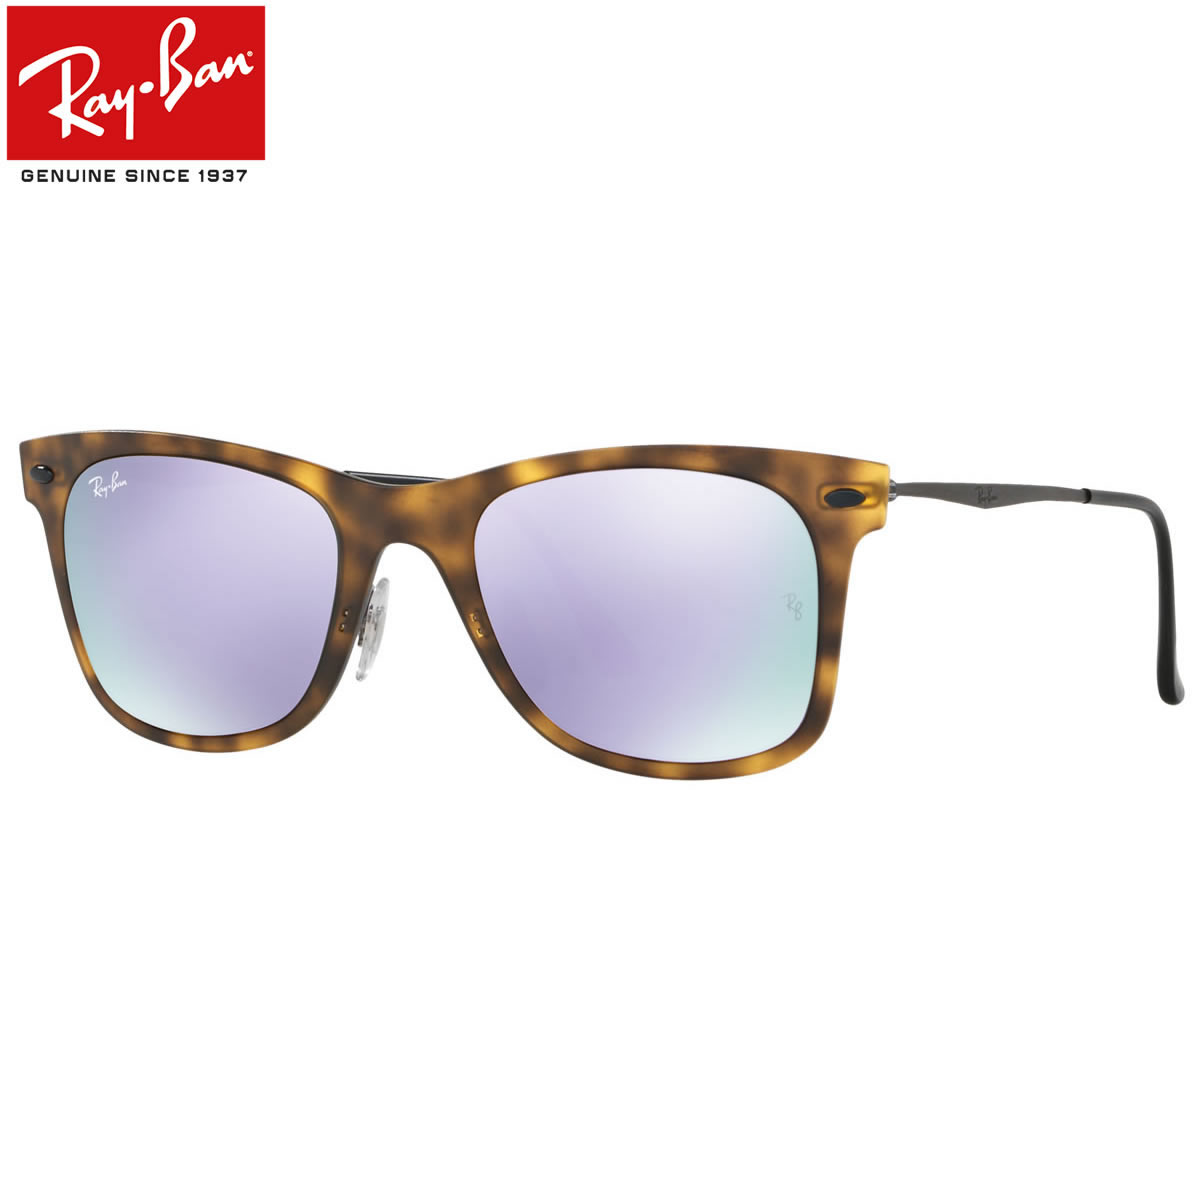 a096806565 The Wayfarer Light Ray is engrave a new page in the history of the Ray-Ban.  Slim titanium temples joined the iconic Wayfarer front and that is not  design.